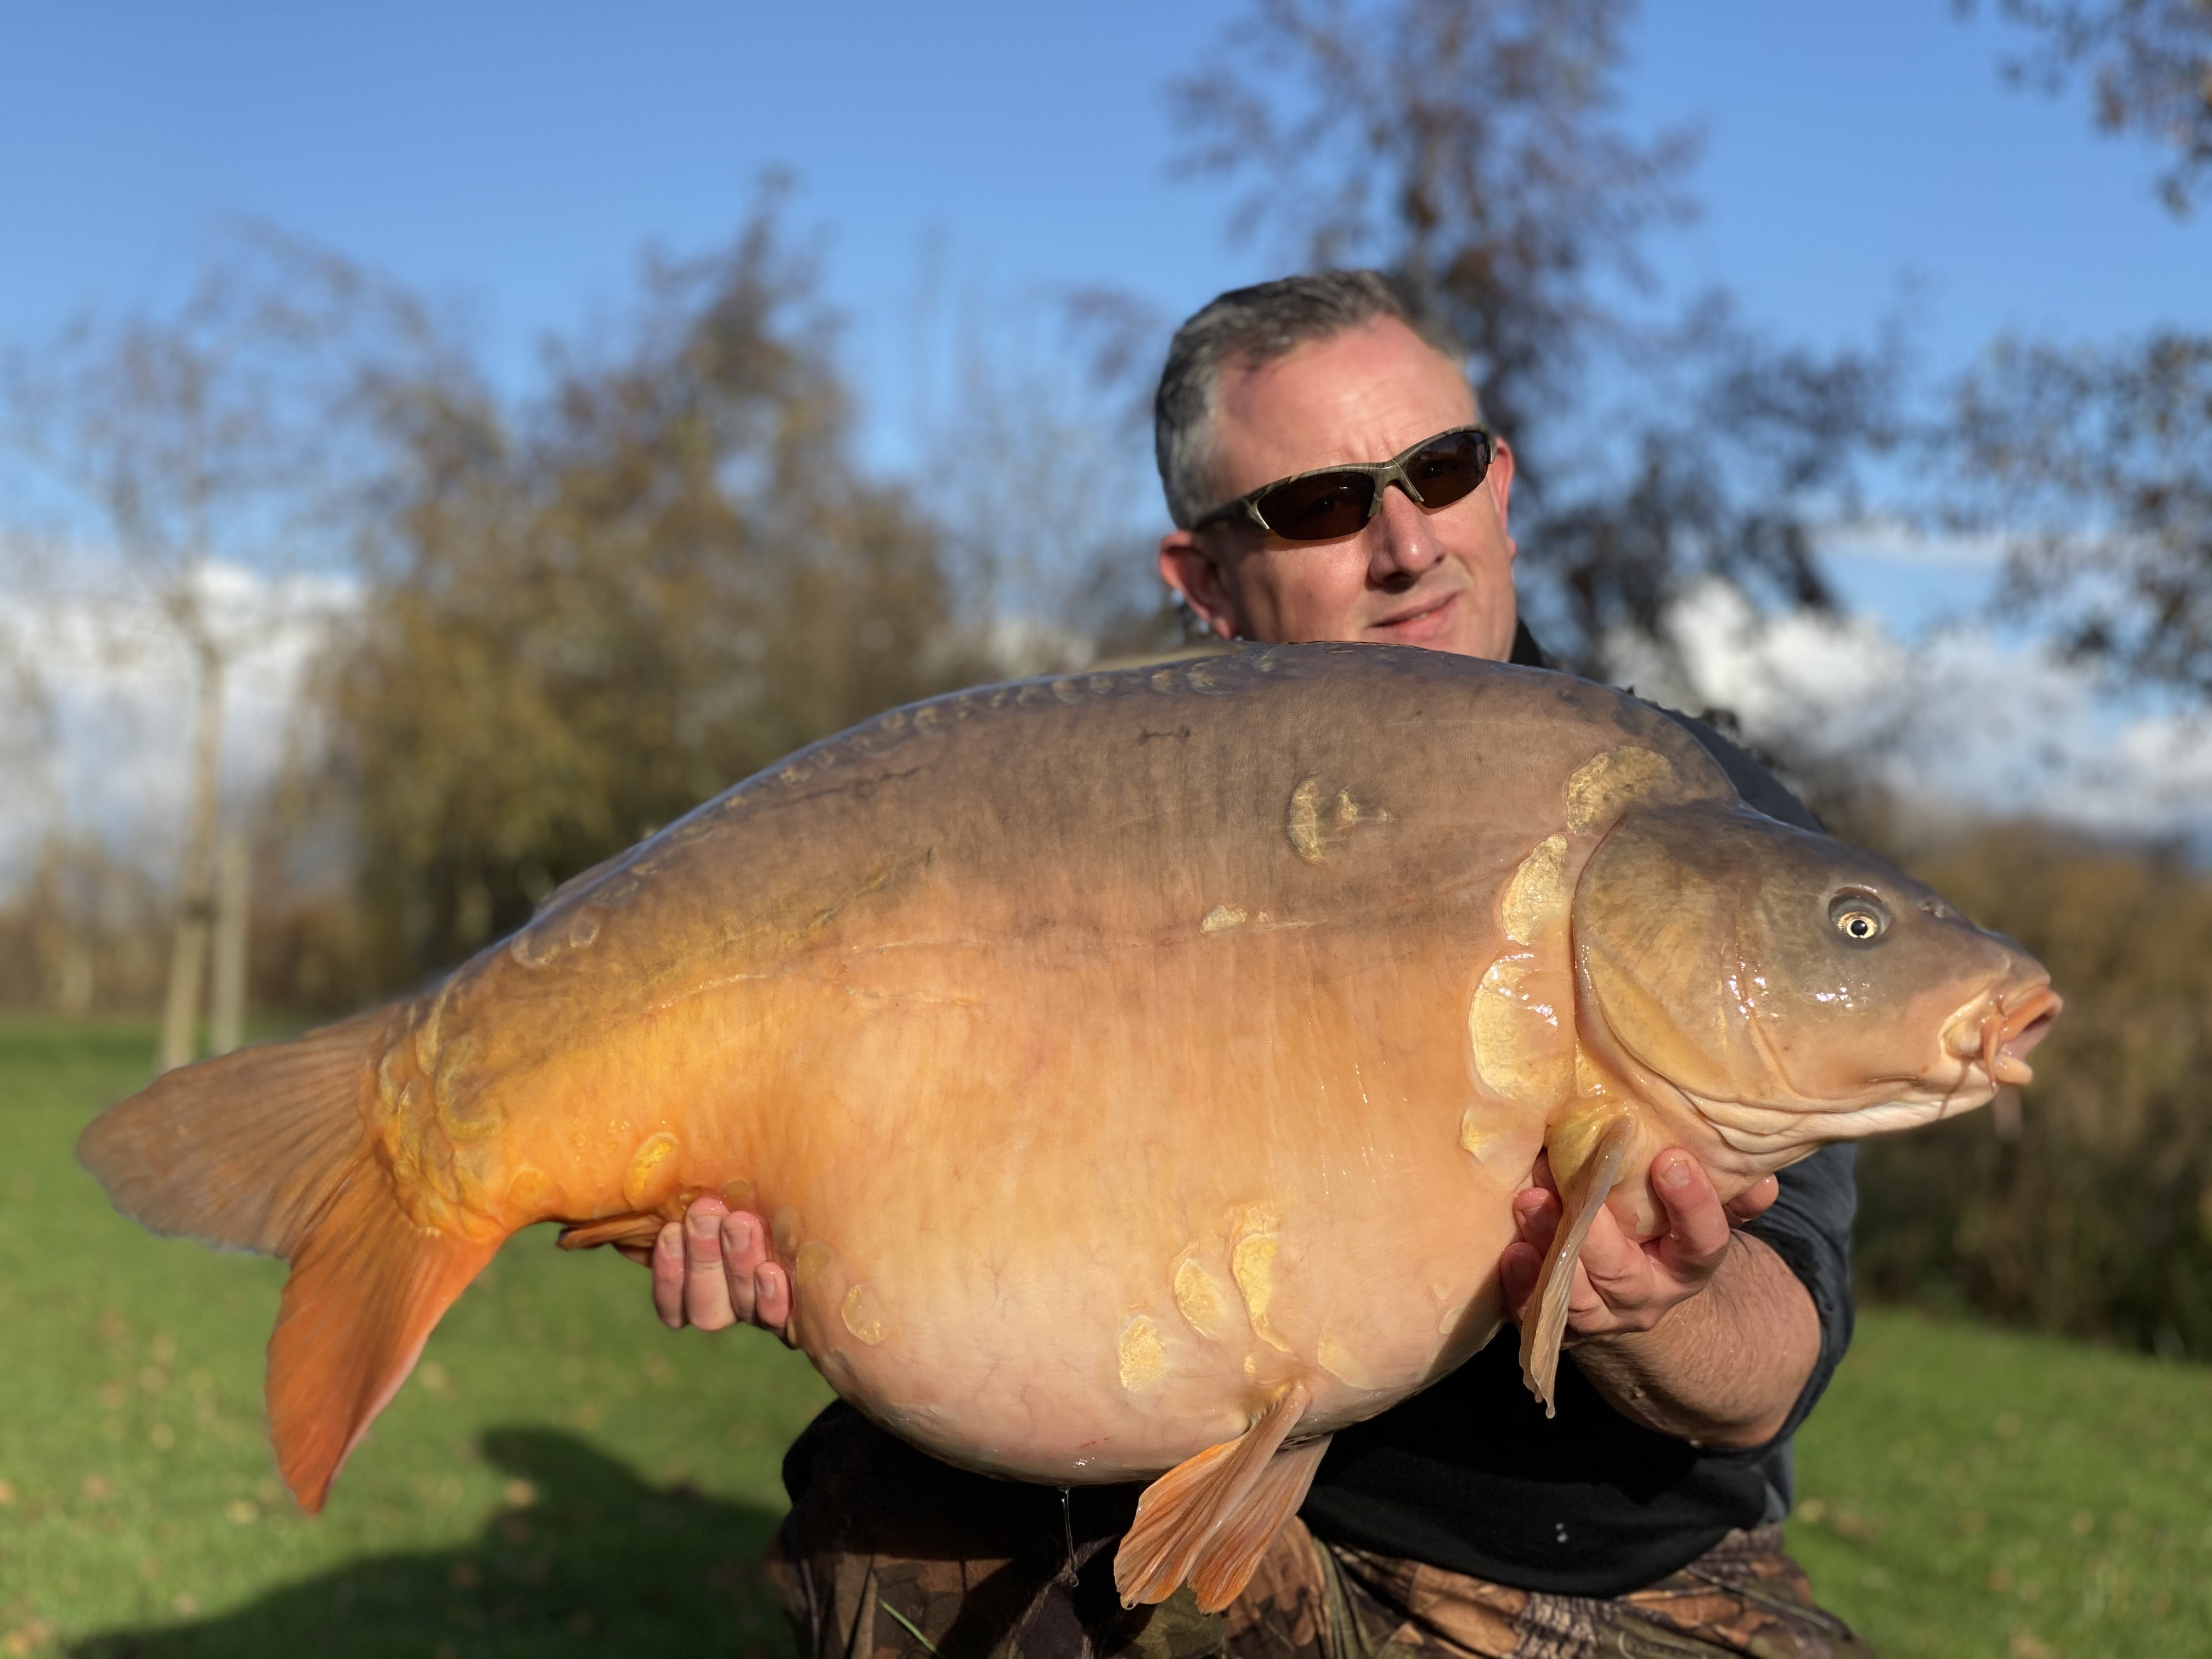 46lb 12oz 'Olly'  caught on